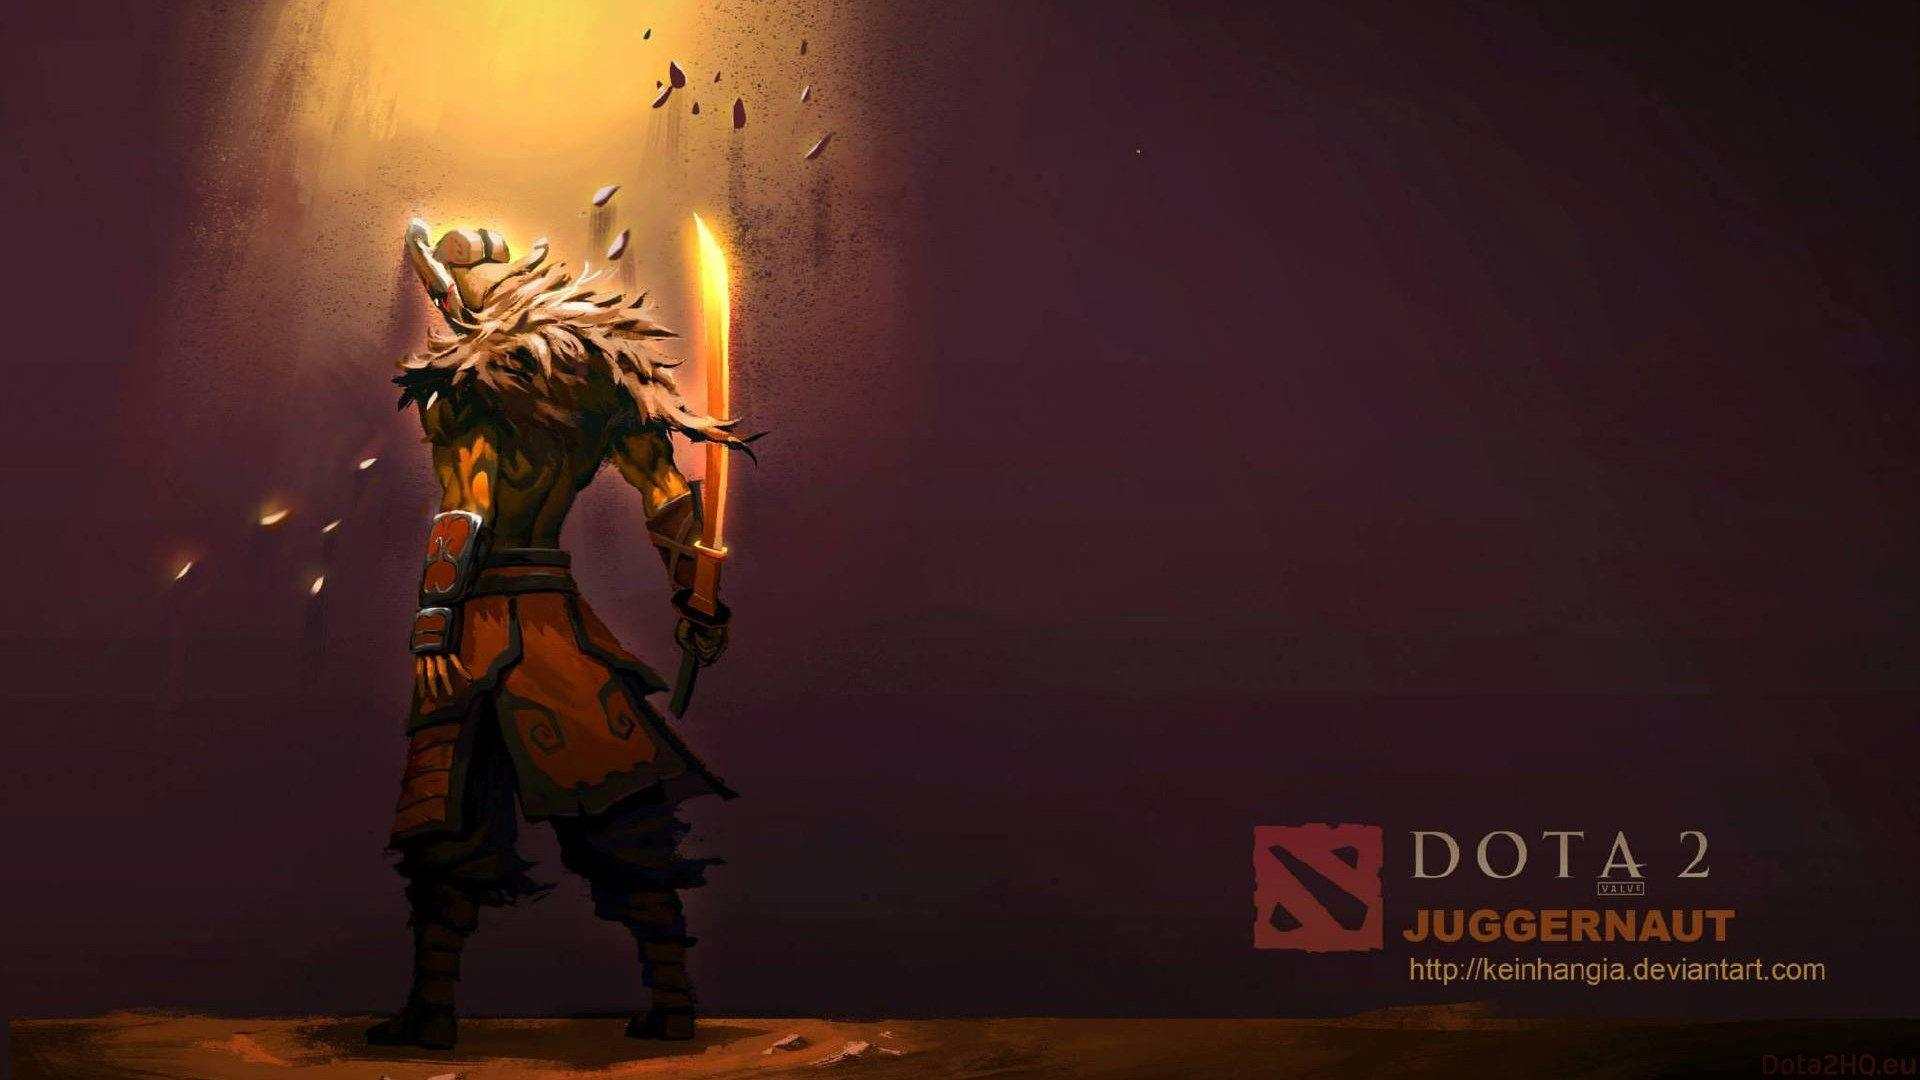 Dota 2 Wallpapers HD Wallpaper Cave